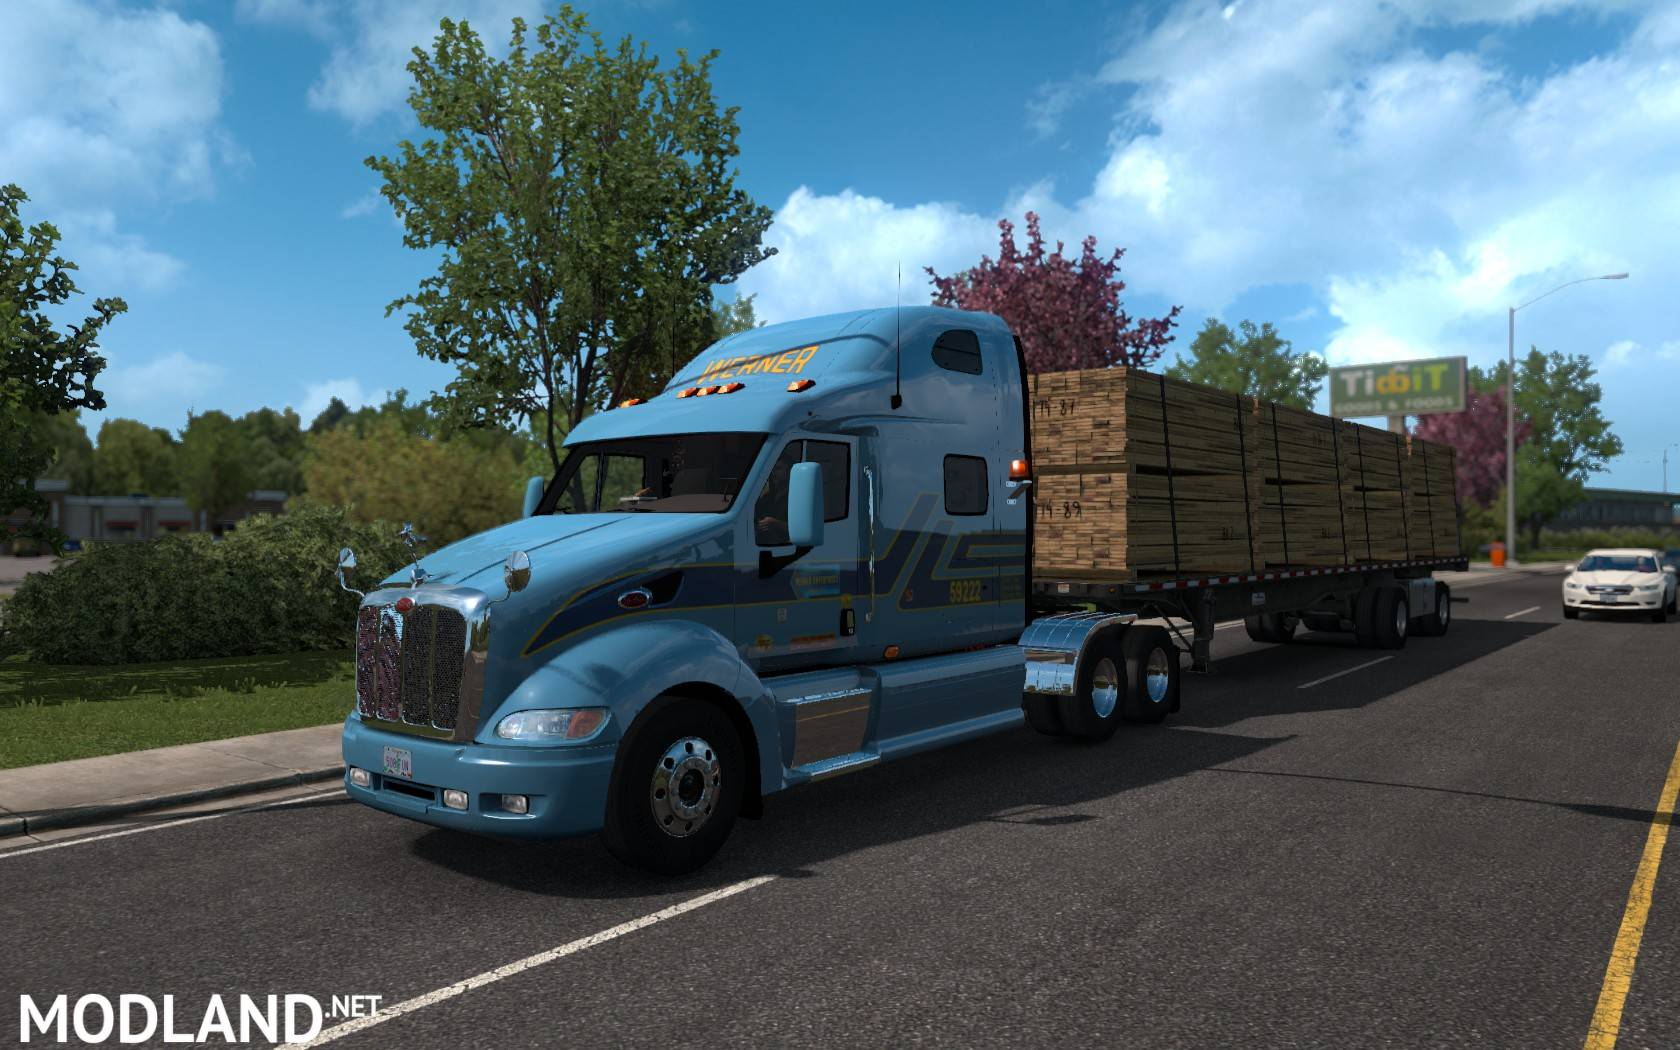 Peterbilt 387 v2 1 for 1 32-1 34 x mod for American Truck Simulator, ATS